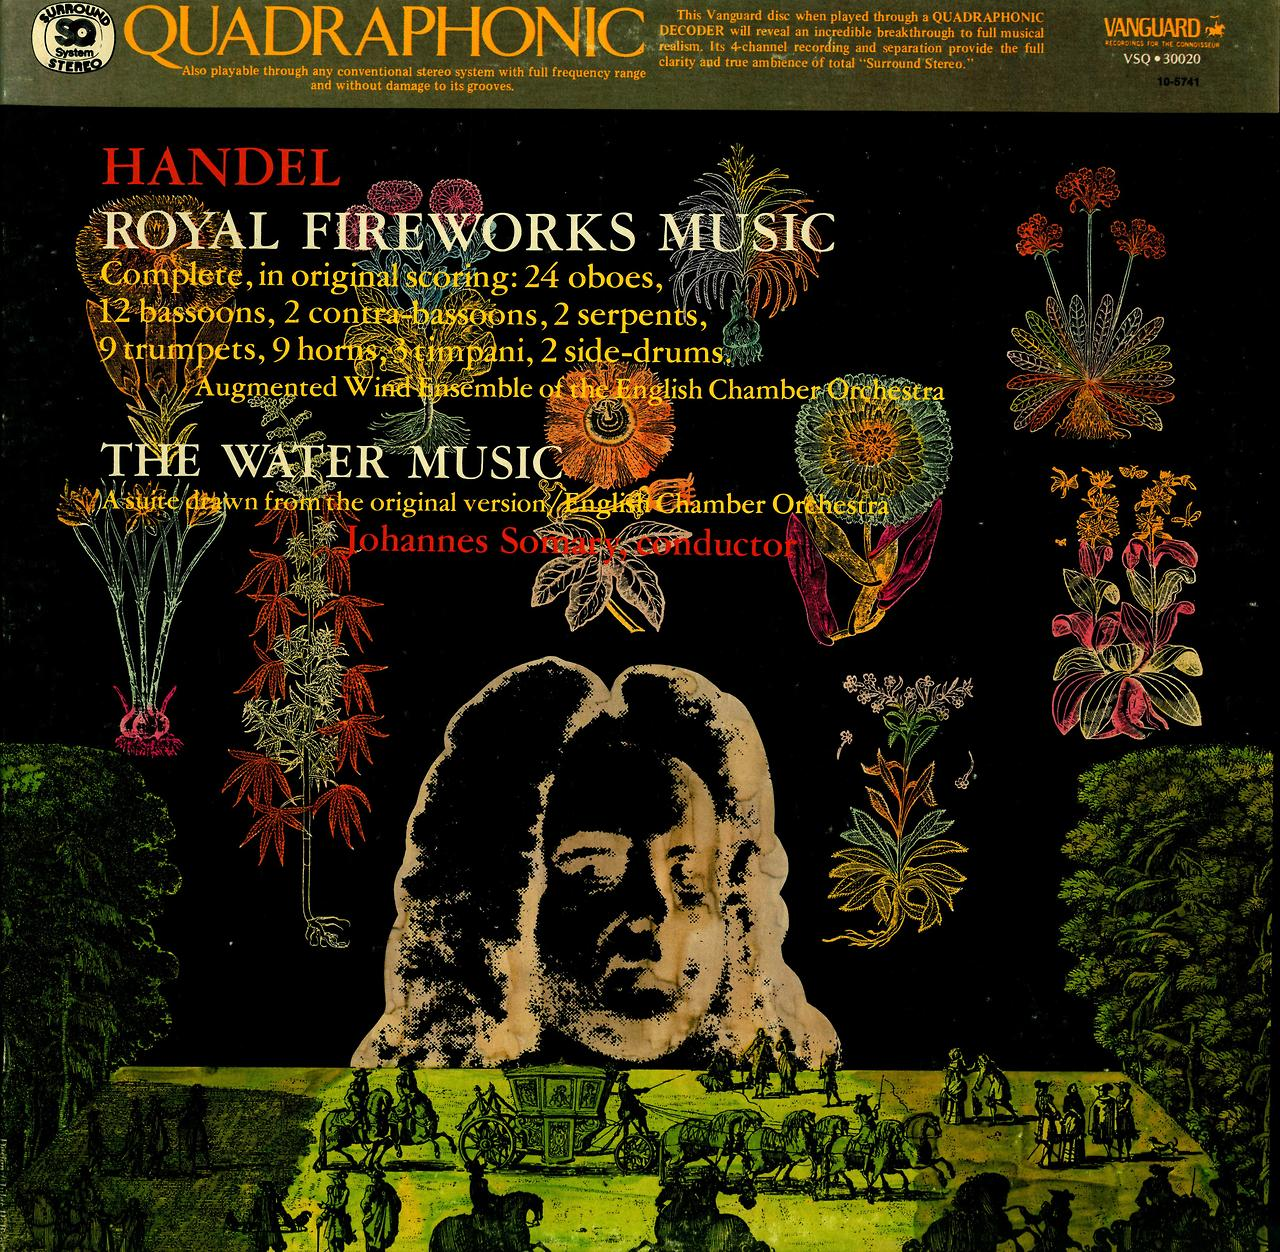 Handel Royal Fireworks Music / The Water Music